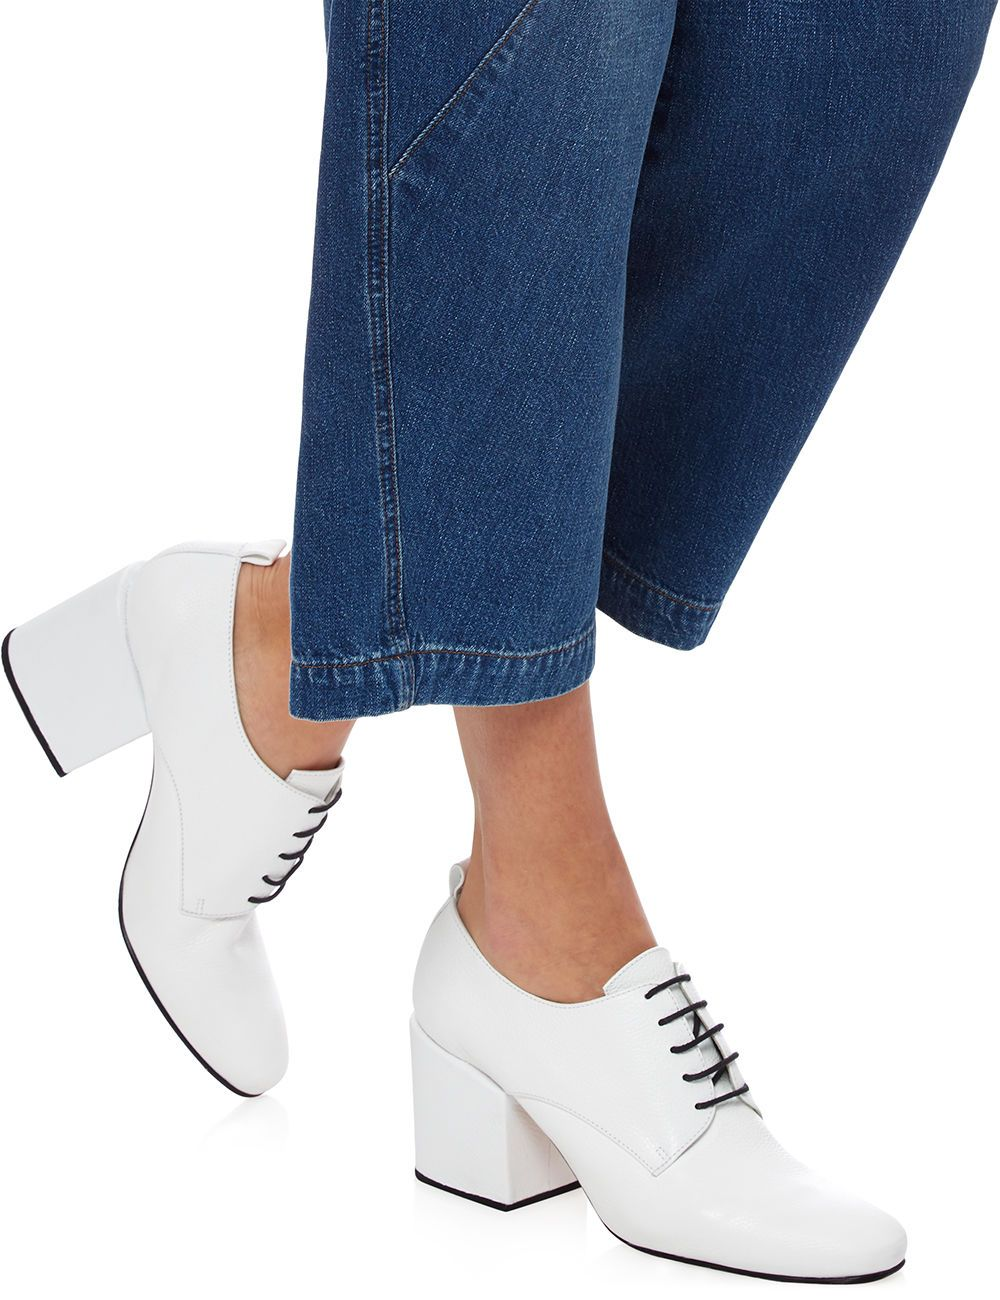 White Leather Block Heel Shoes